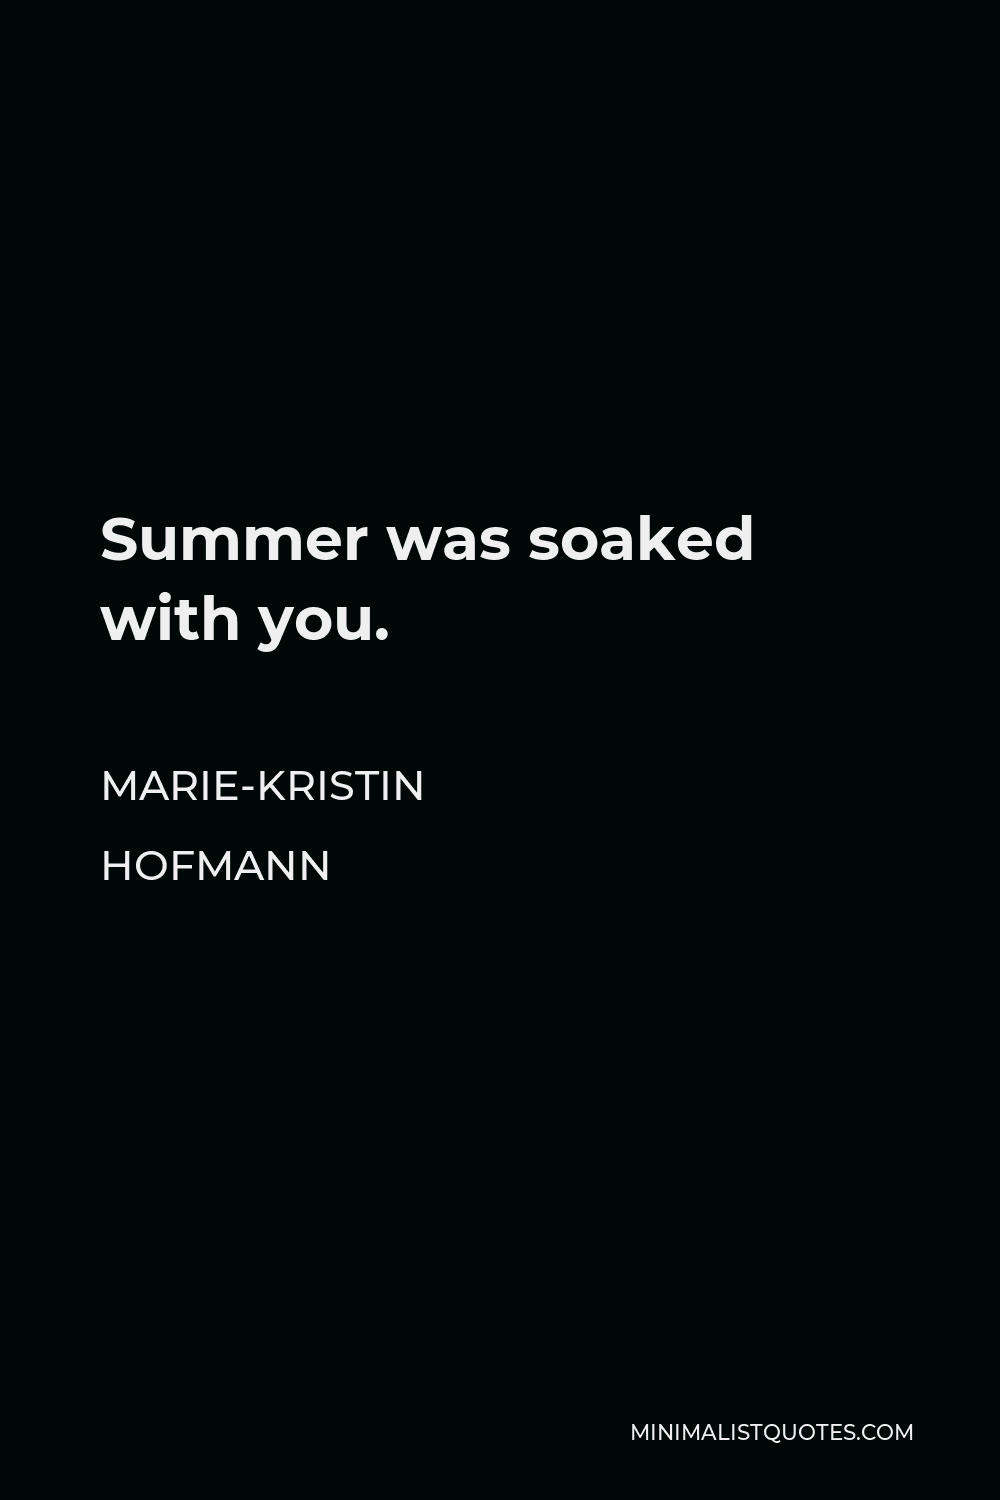 Marie-Kristin Hofmann Quote - Summer was soaked with you.